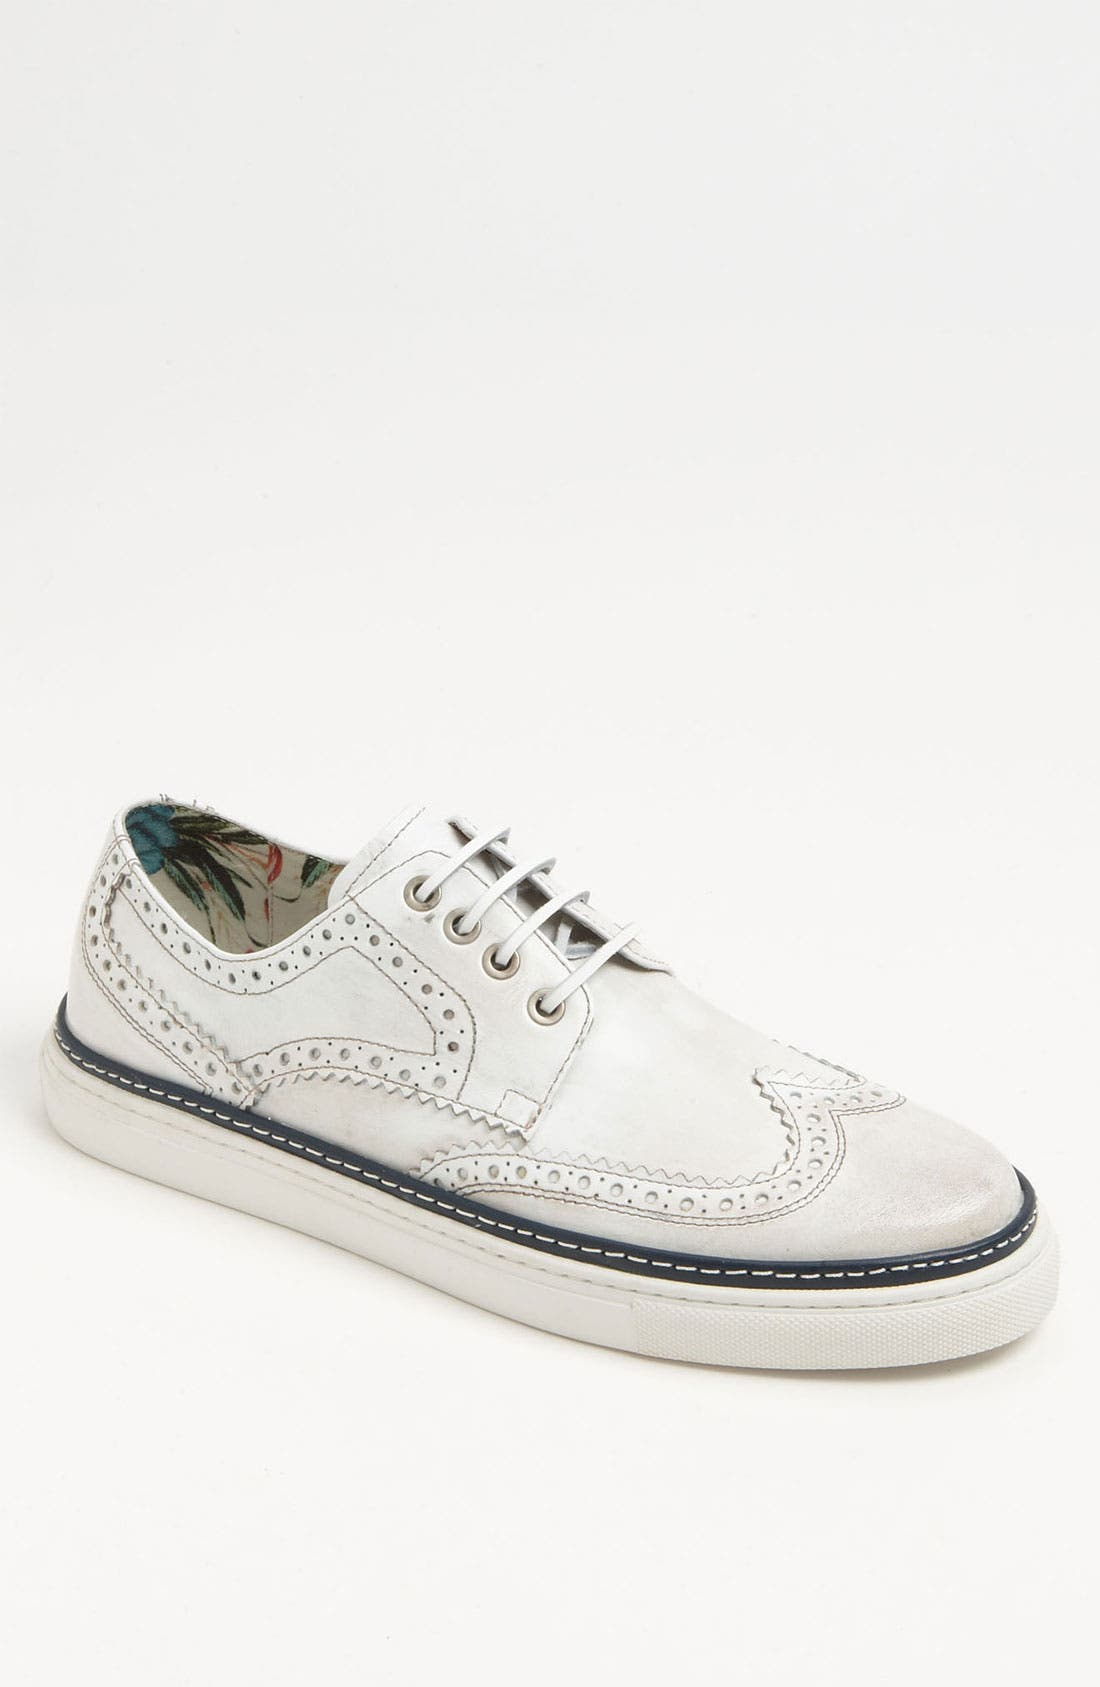 Alternate Image 1 Selected - Vince Camuto 'Spello' Wingtip